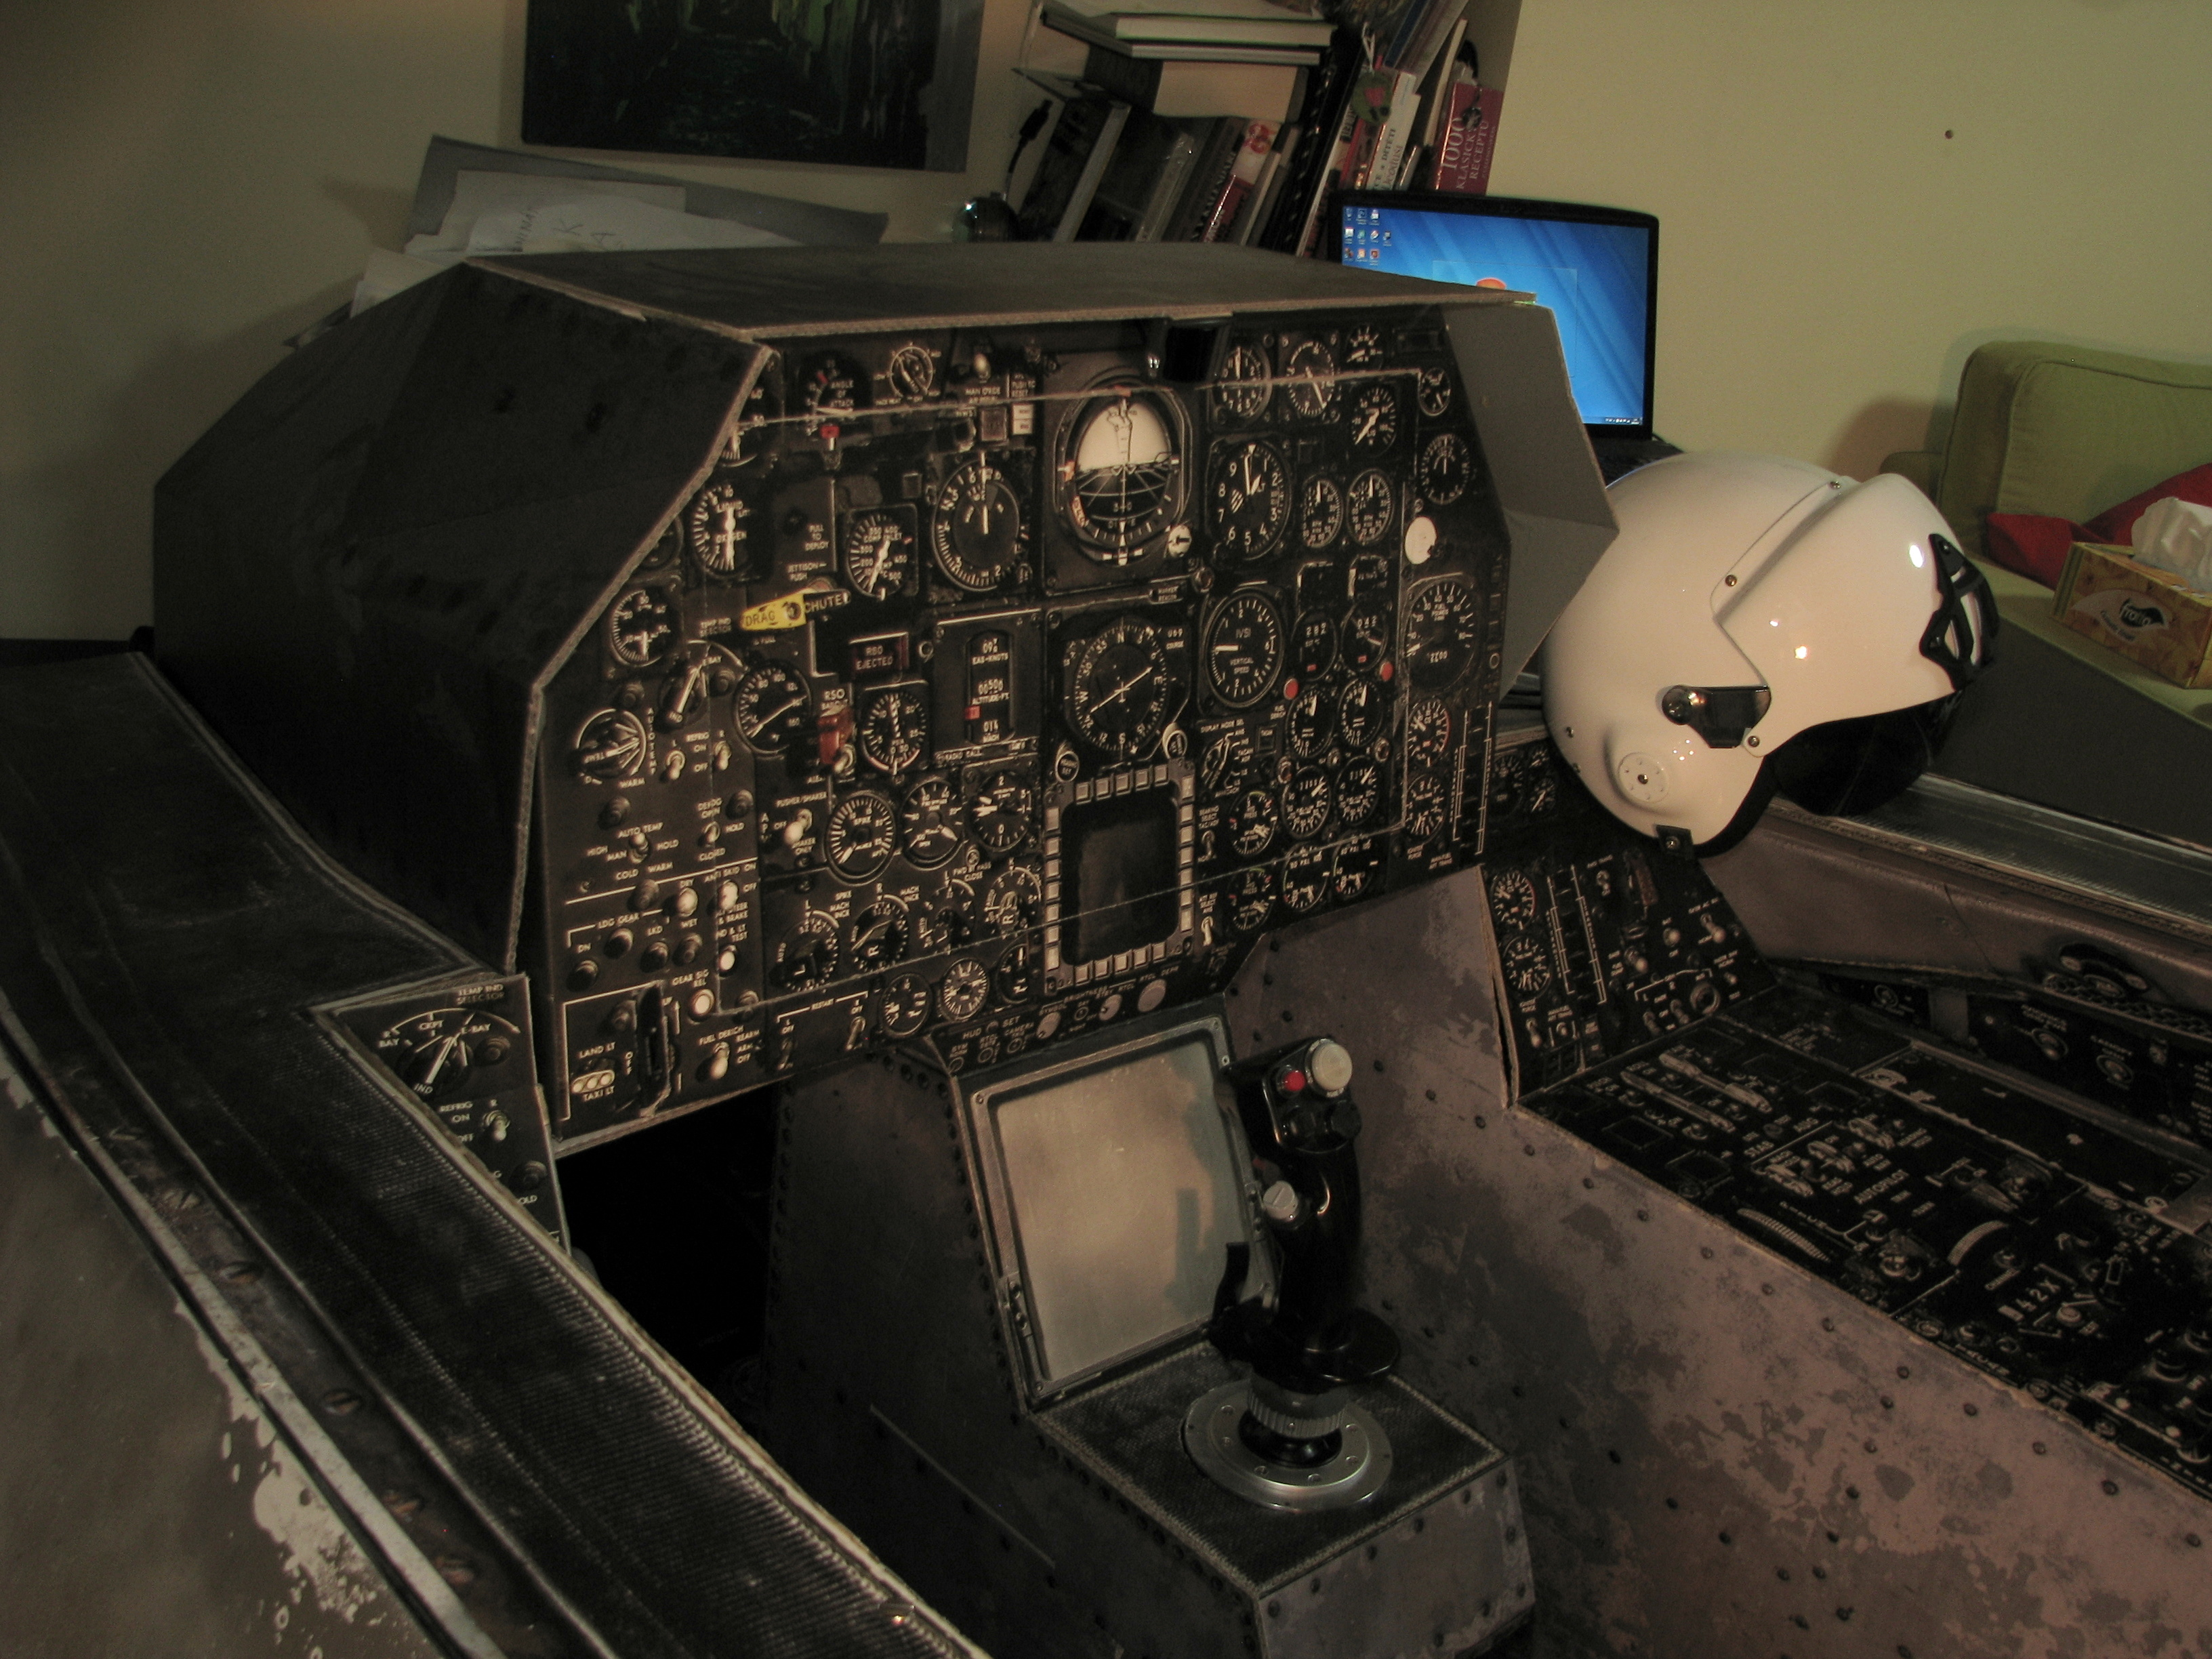 Picture of Full Scale Fighter Jet Cockpit From Cardboard